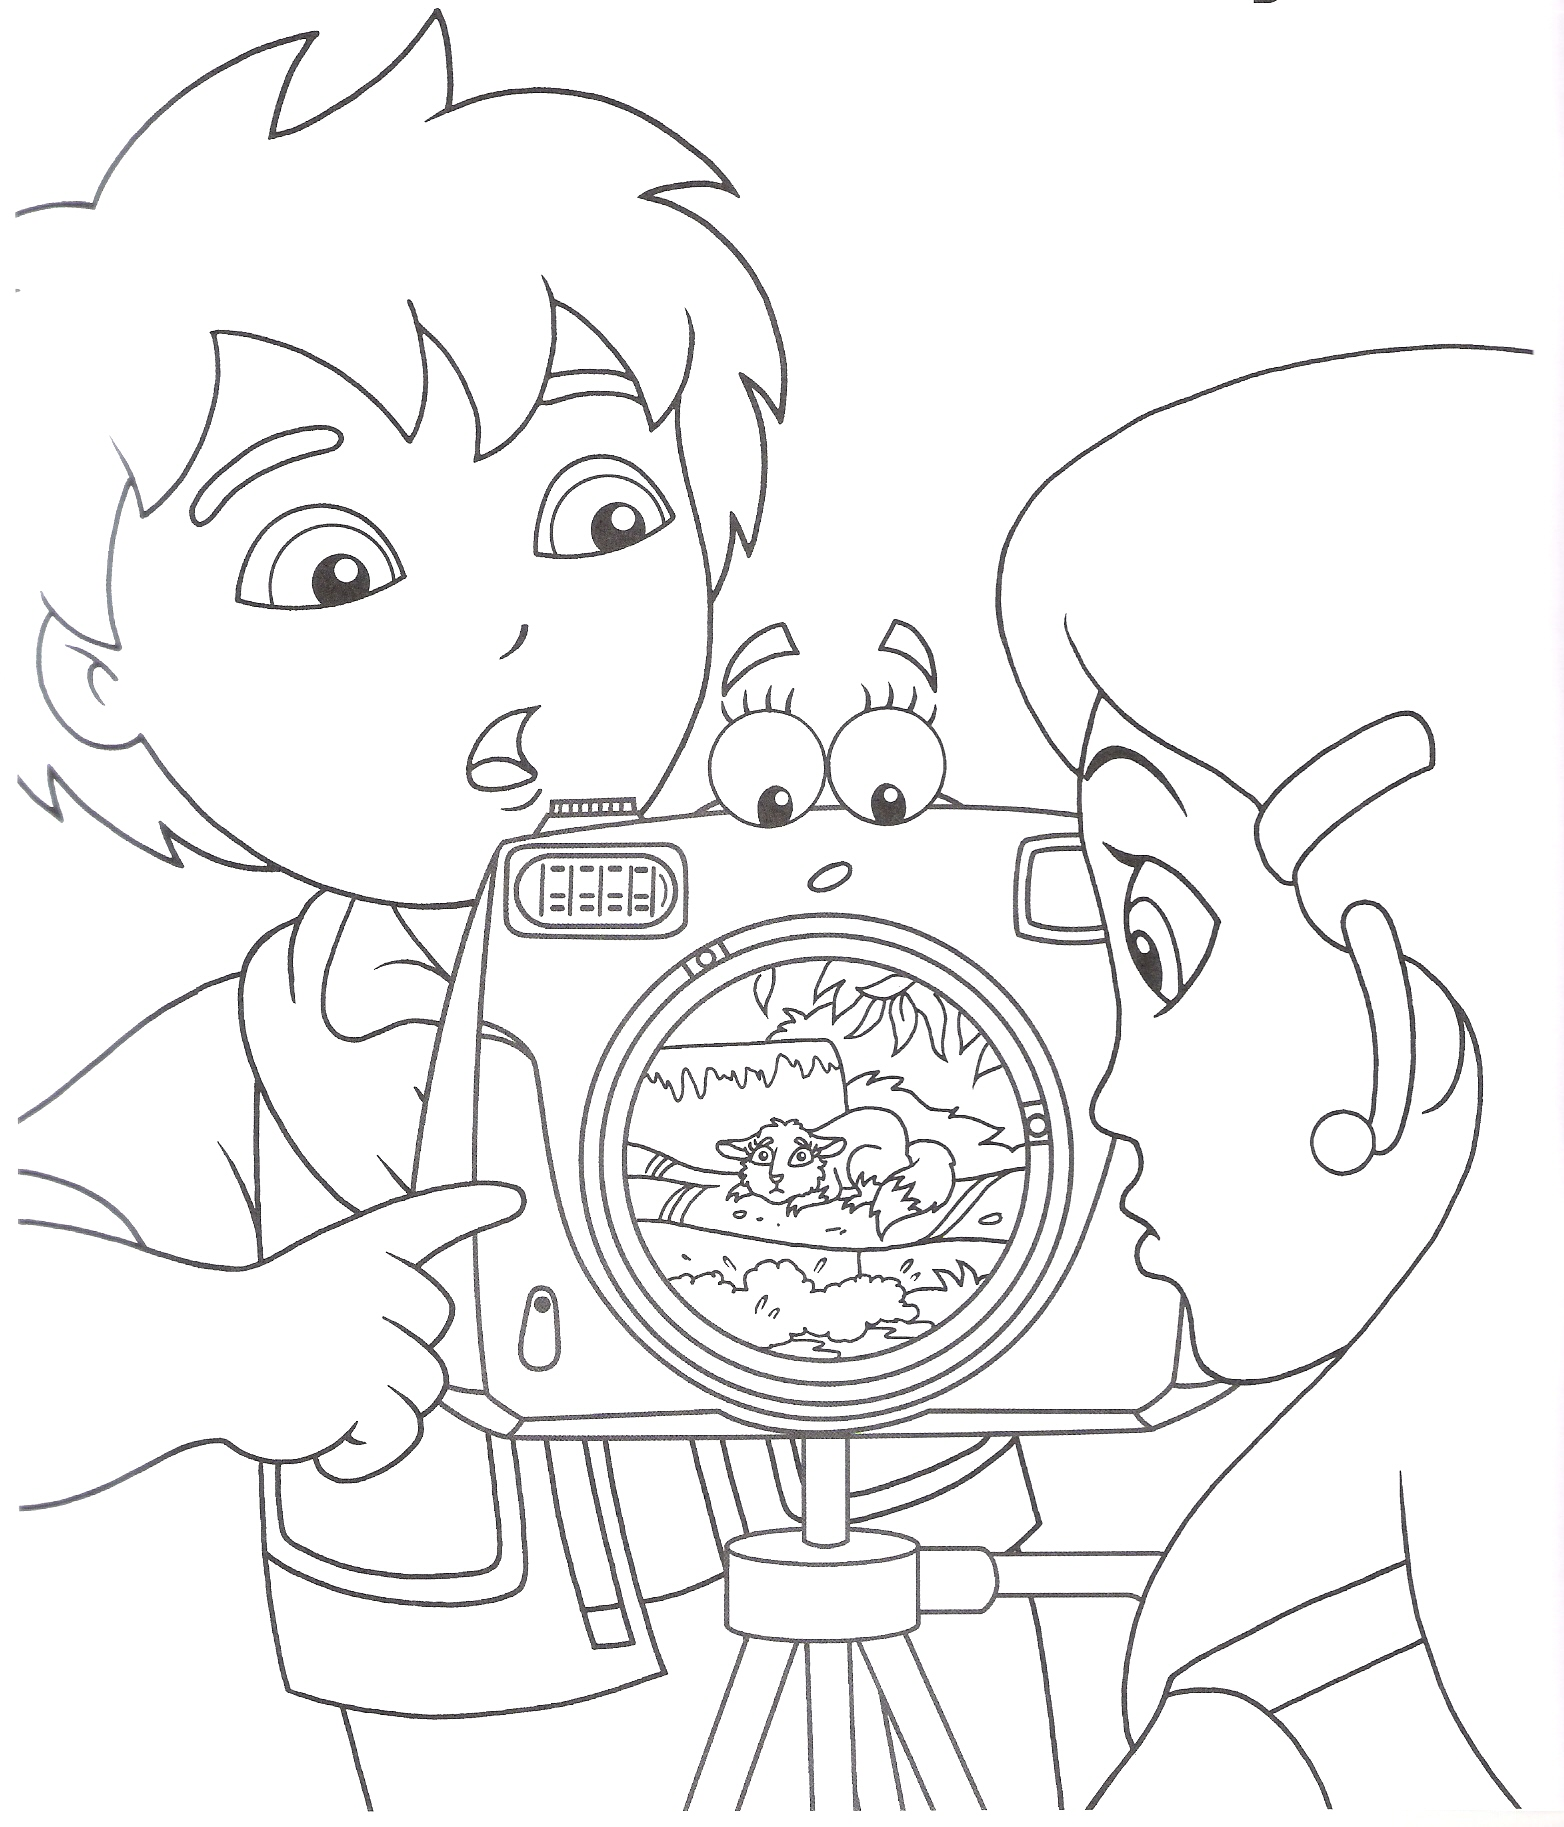 Painting pages to print - Free Diego Coloring Pages